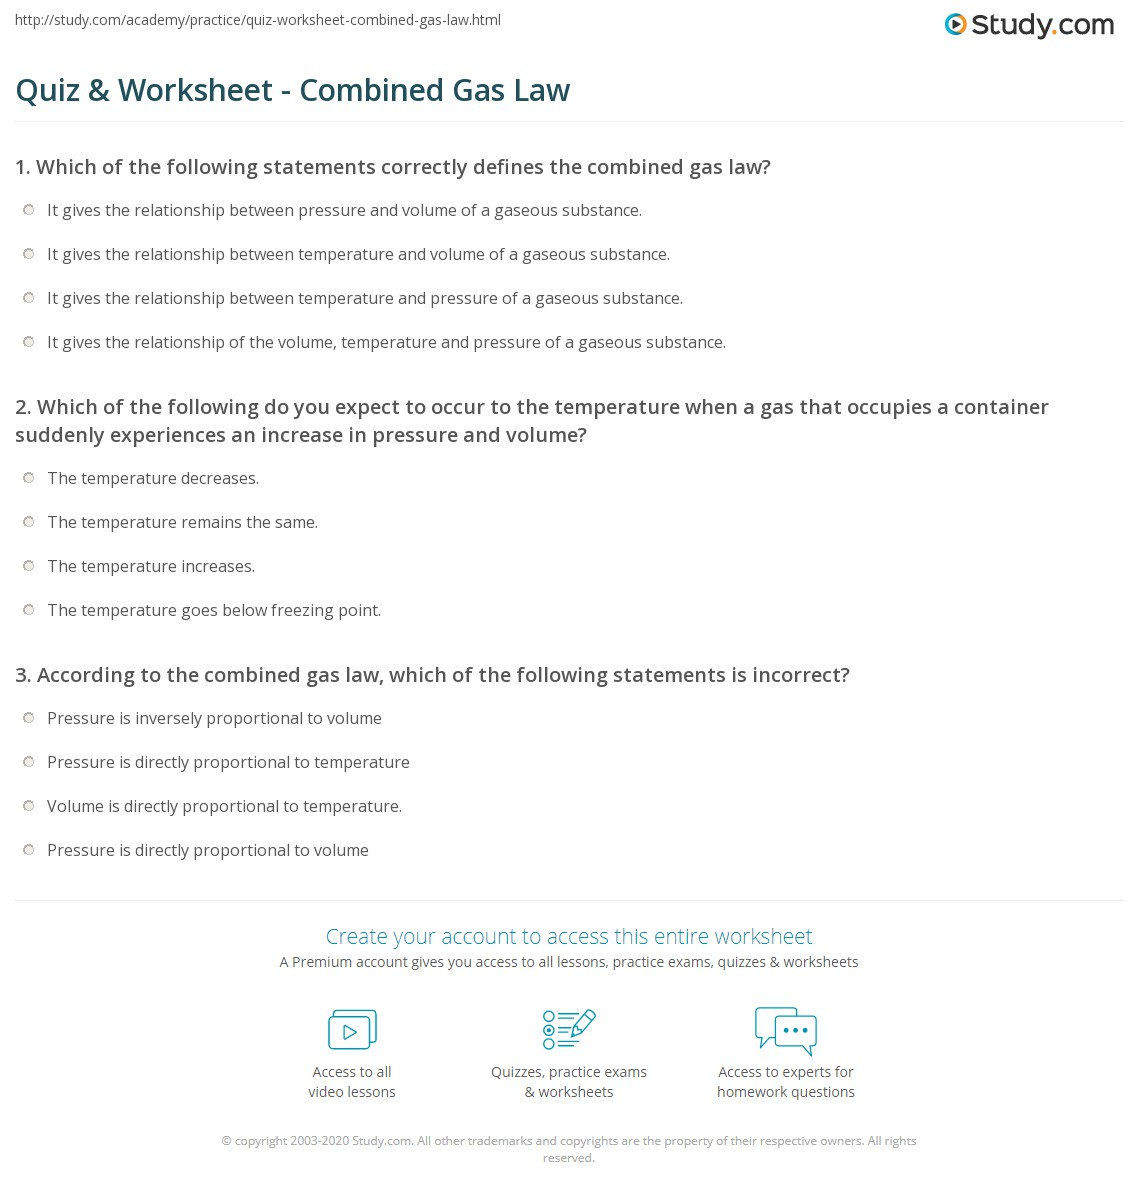 Combined Gas Law Worksheet Answers